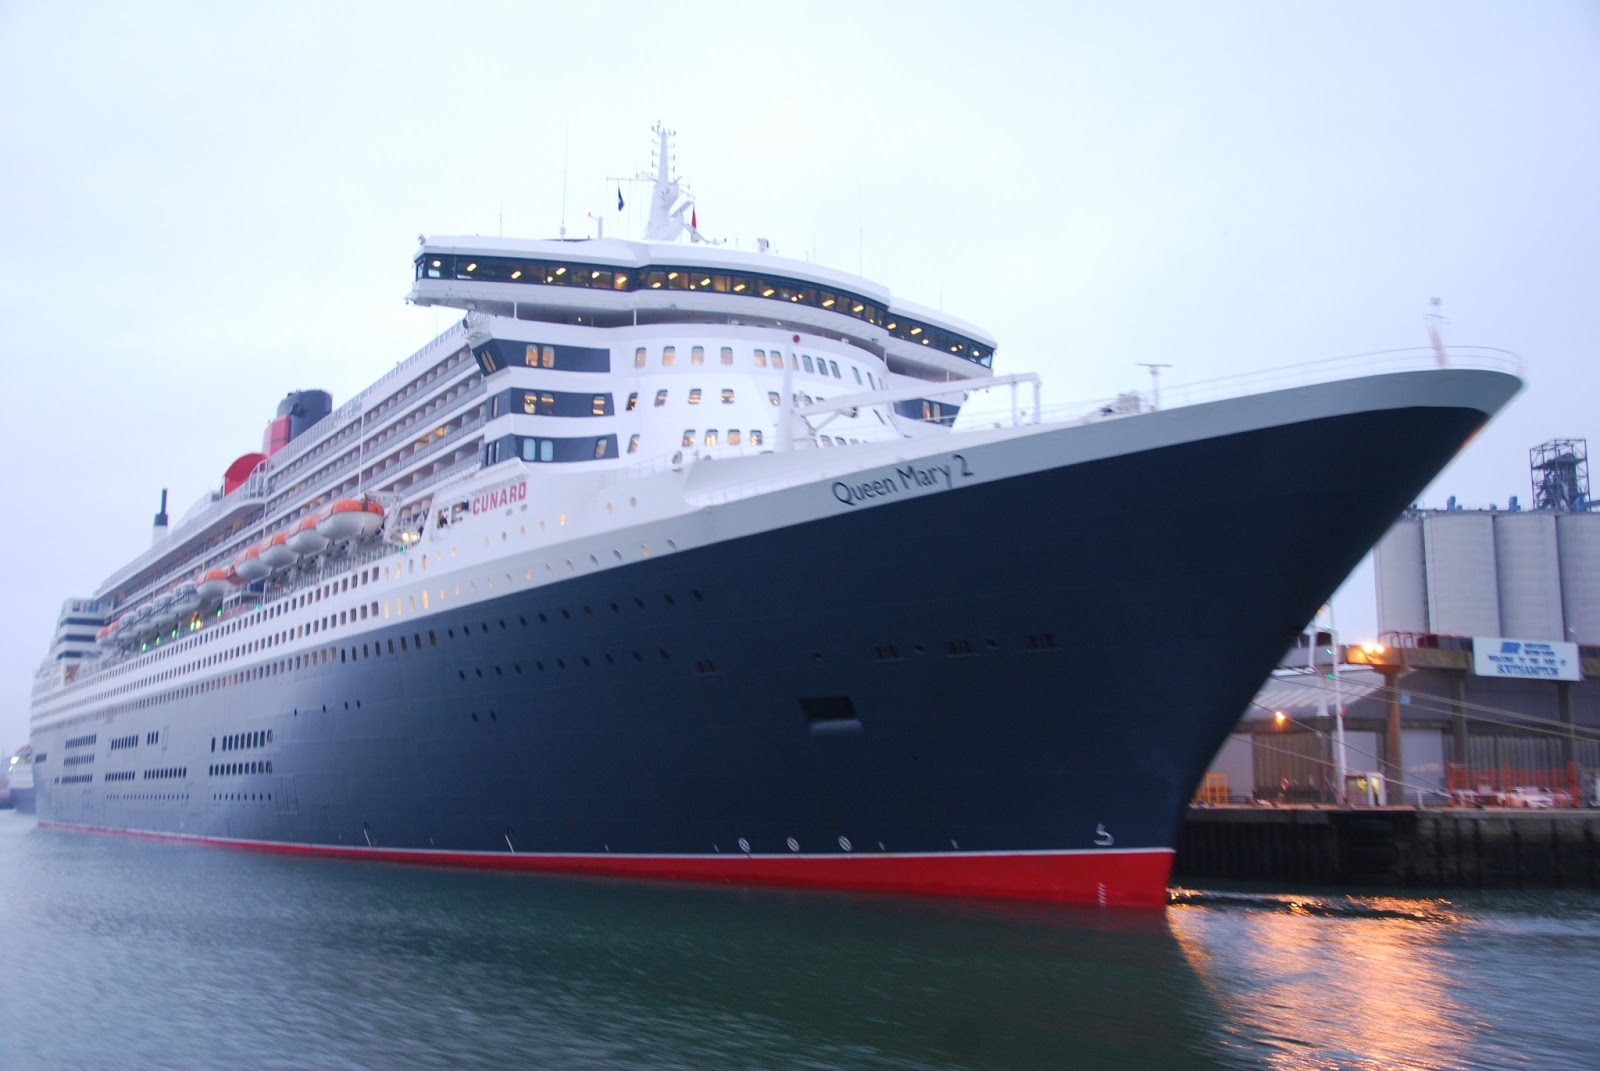 CRUISE SHIPS AND LINERS at Southampton